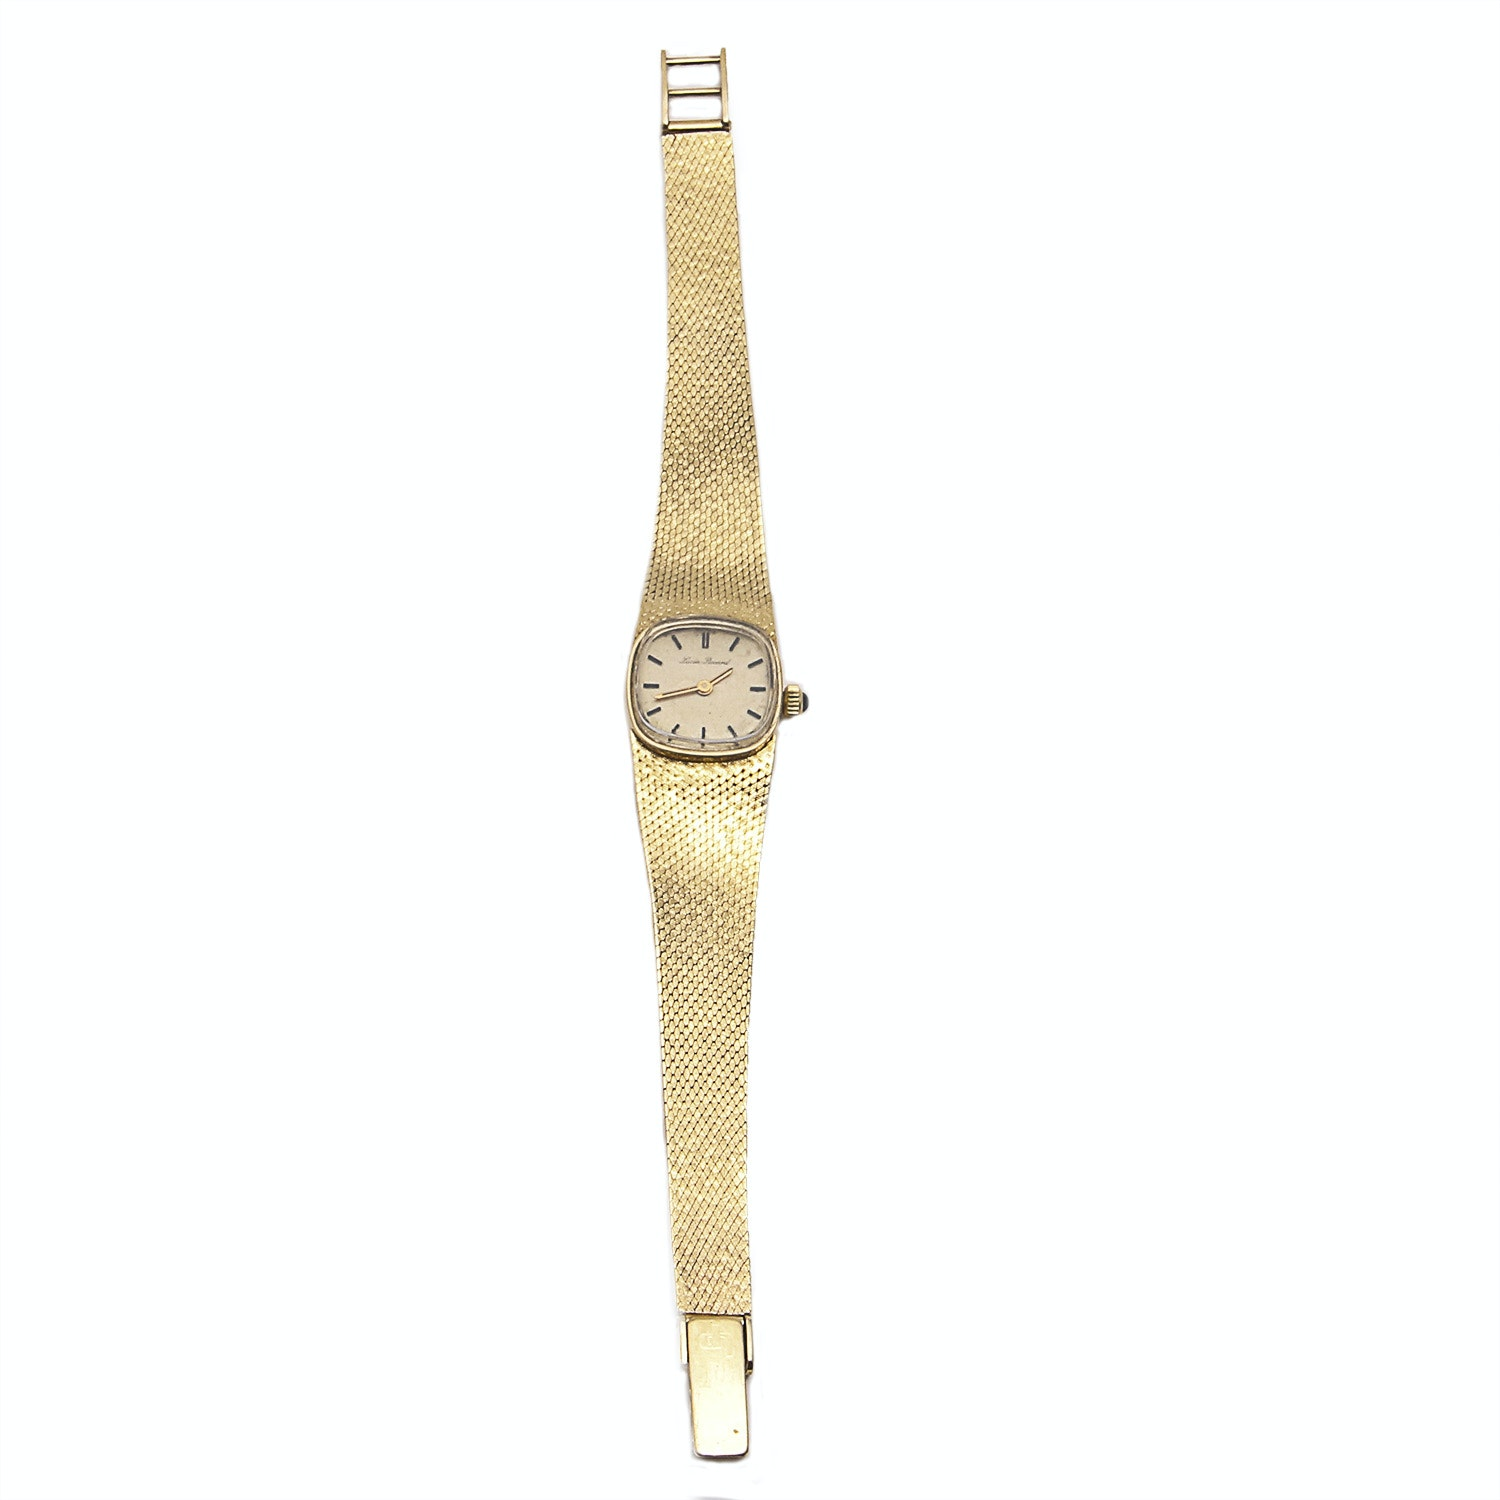 Lucien Piccard 14K Gold Wristwatch